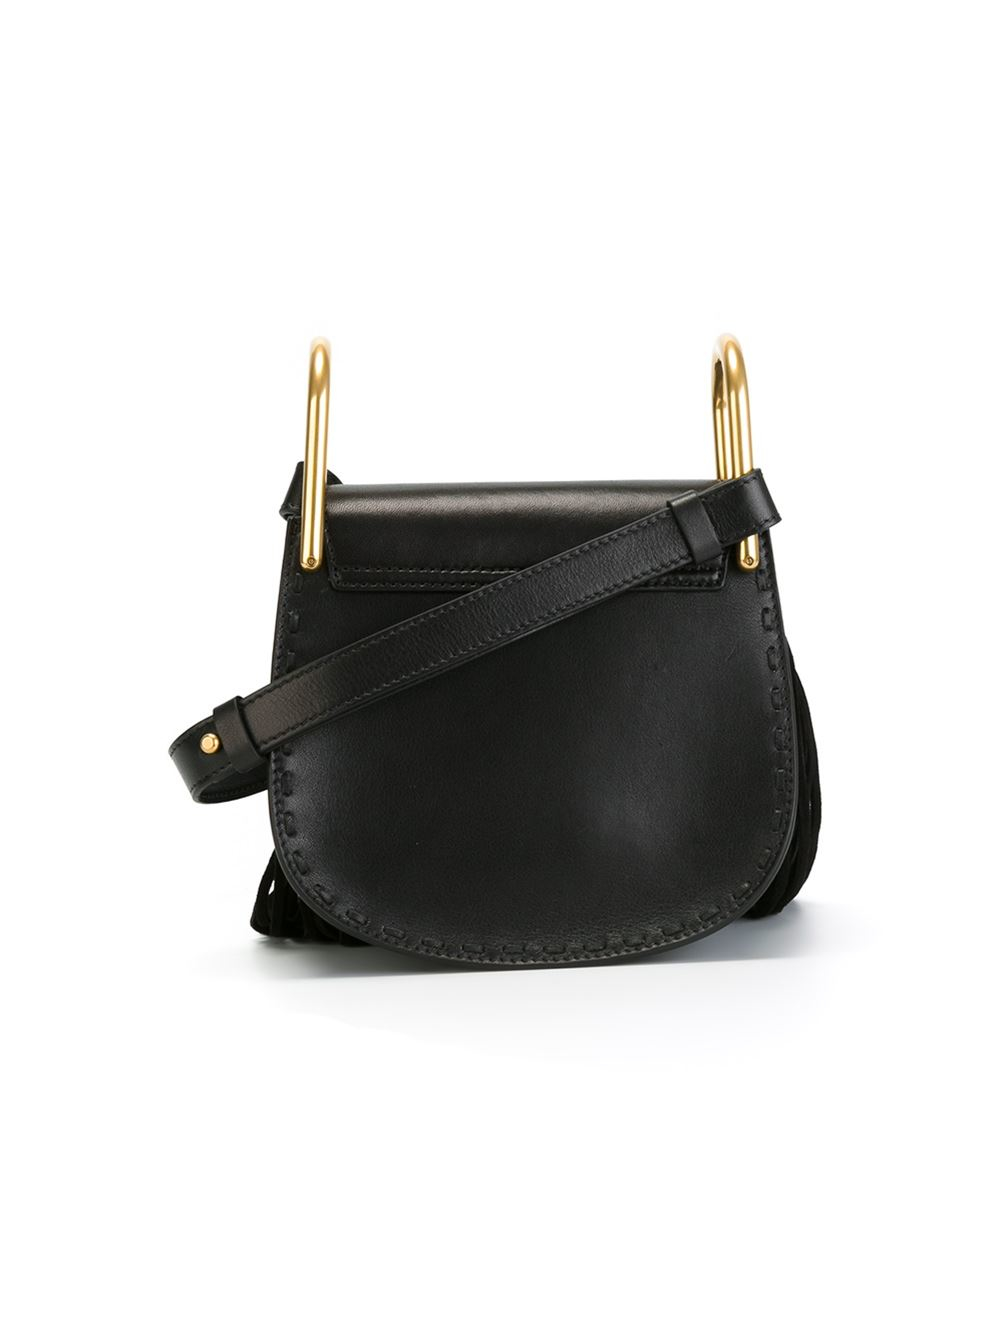 chlo hudson tasseled cross body bag in black lyst. Black Bedroom Furniture Sets. Home Design Ideas